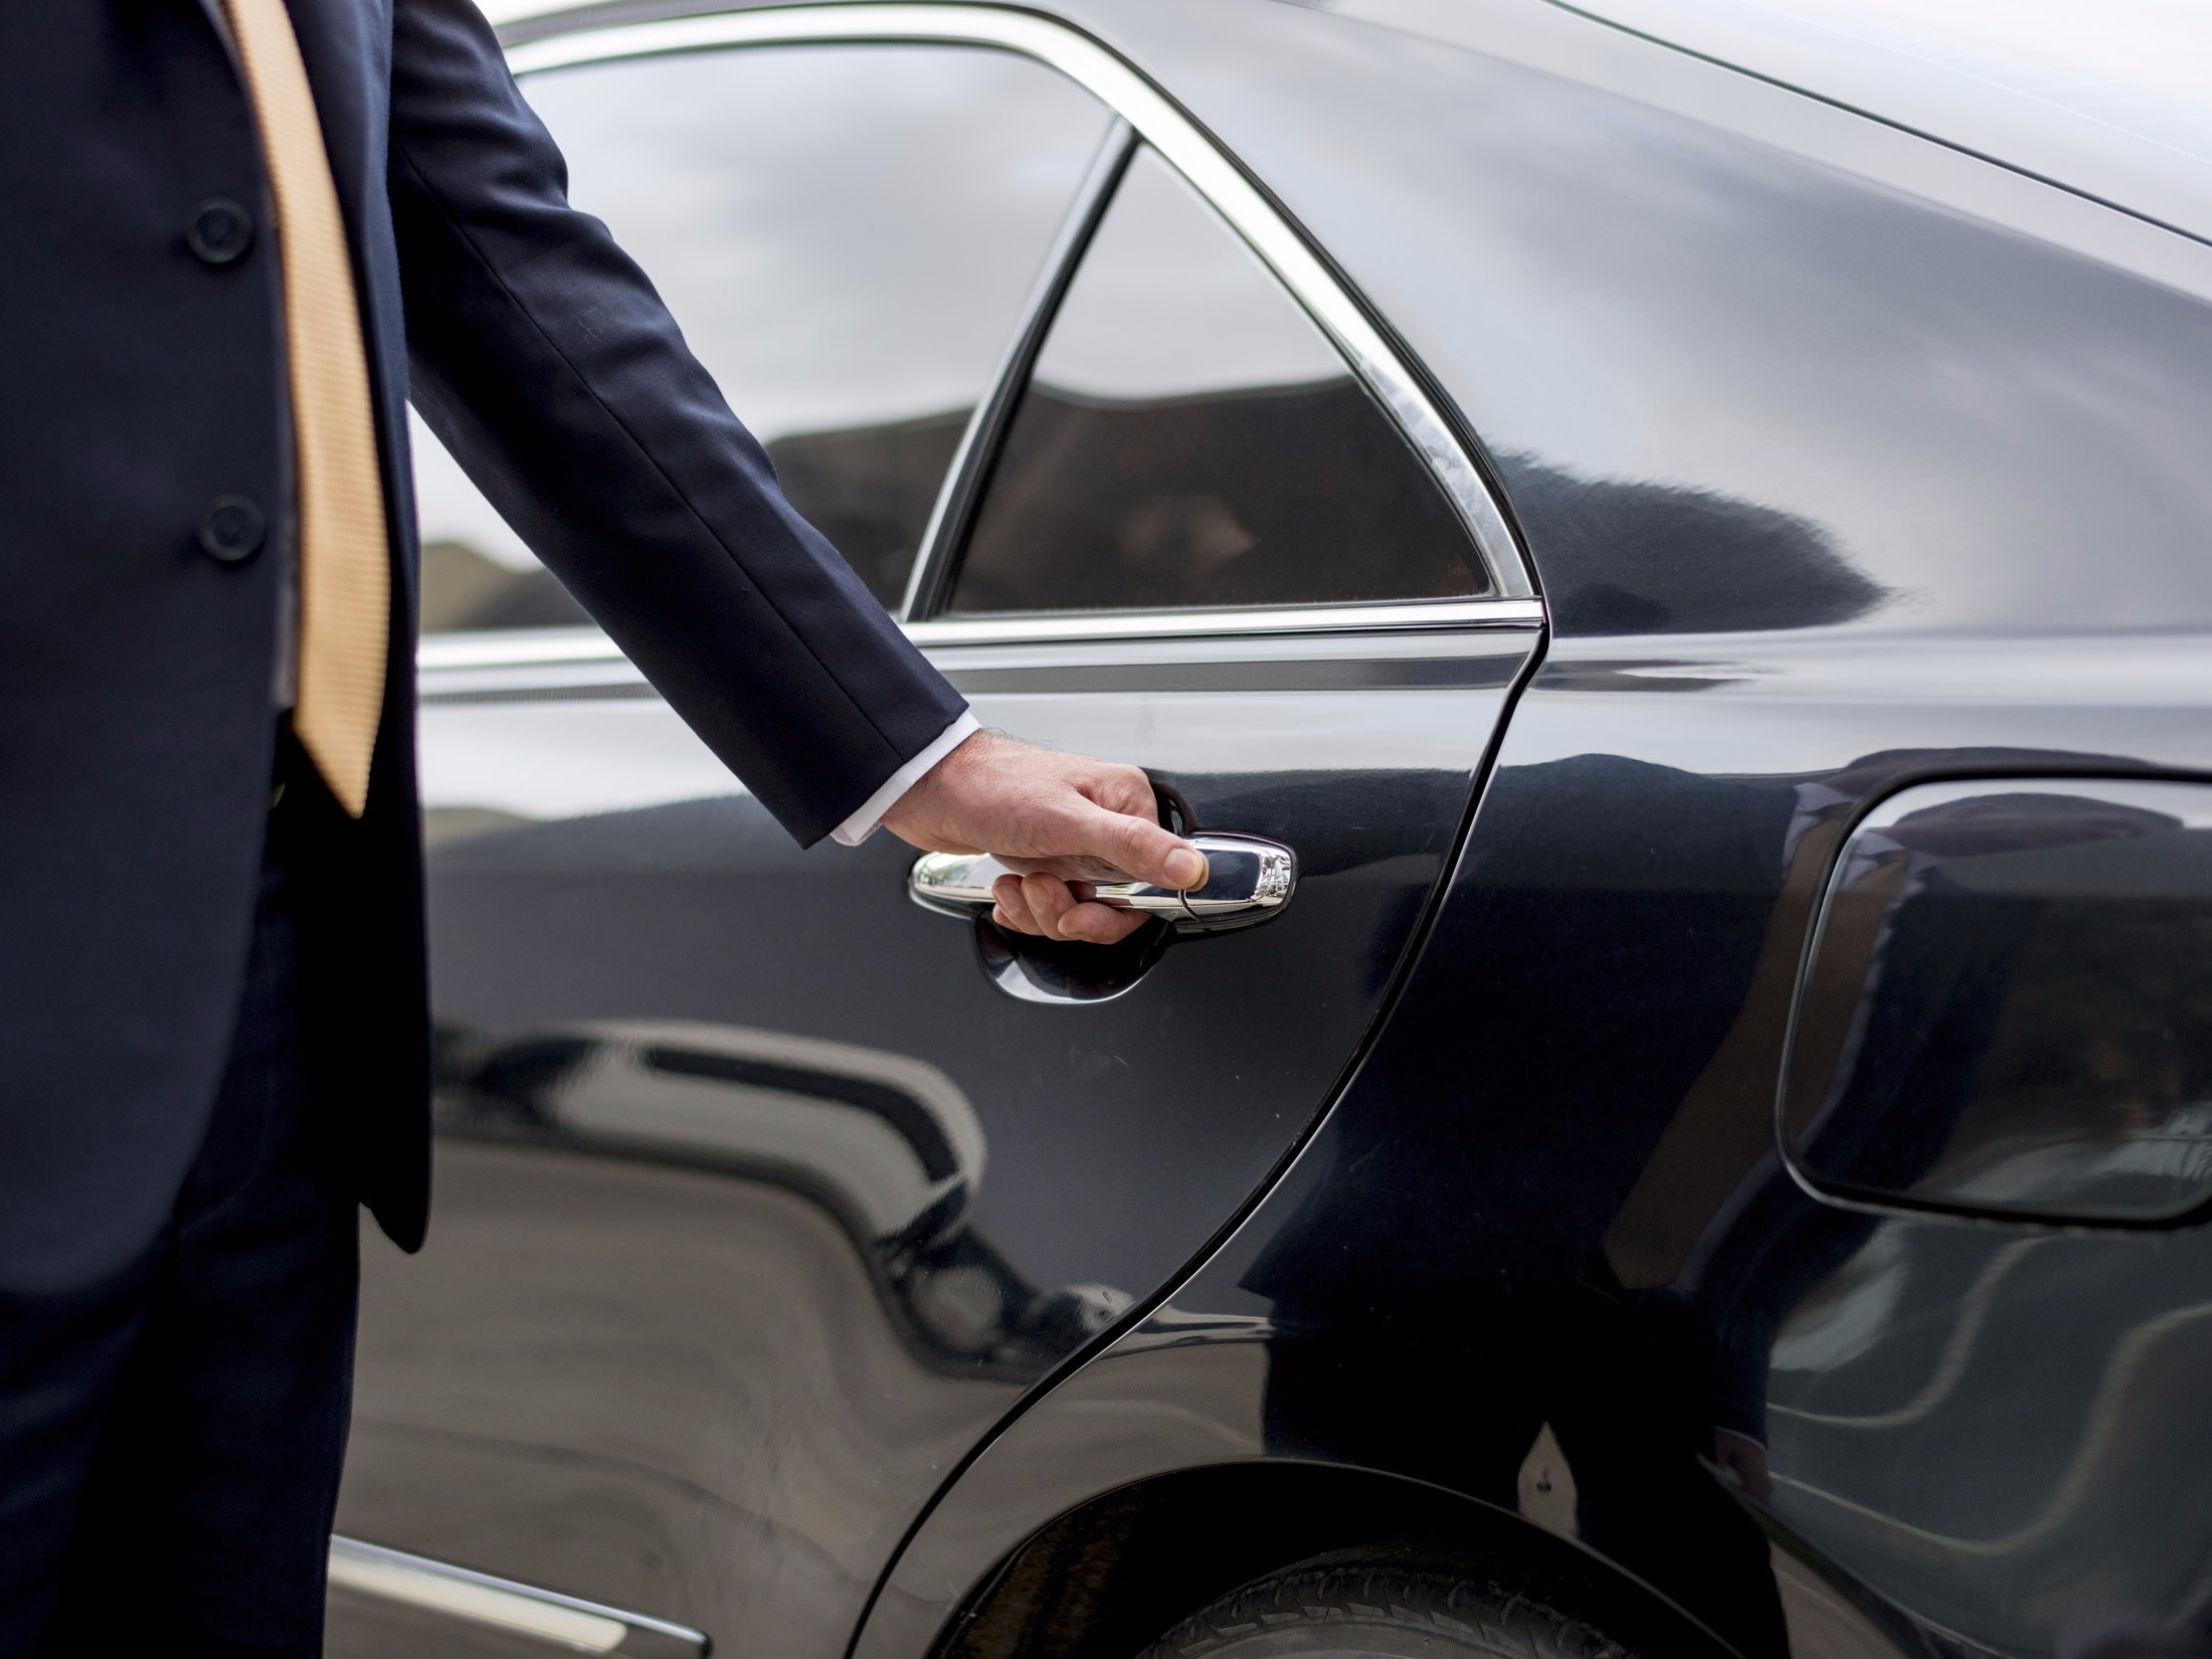 Auto_Elite_Our-Team-chauffeur_opening_door-.jpg